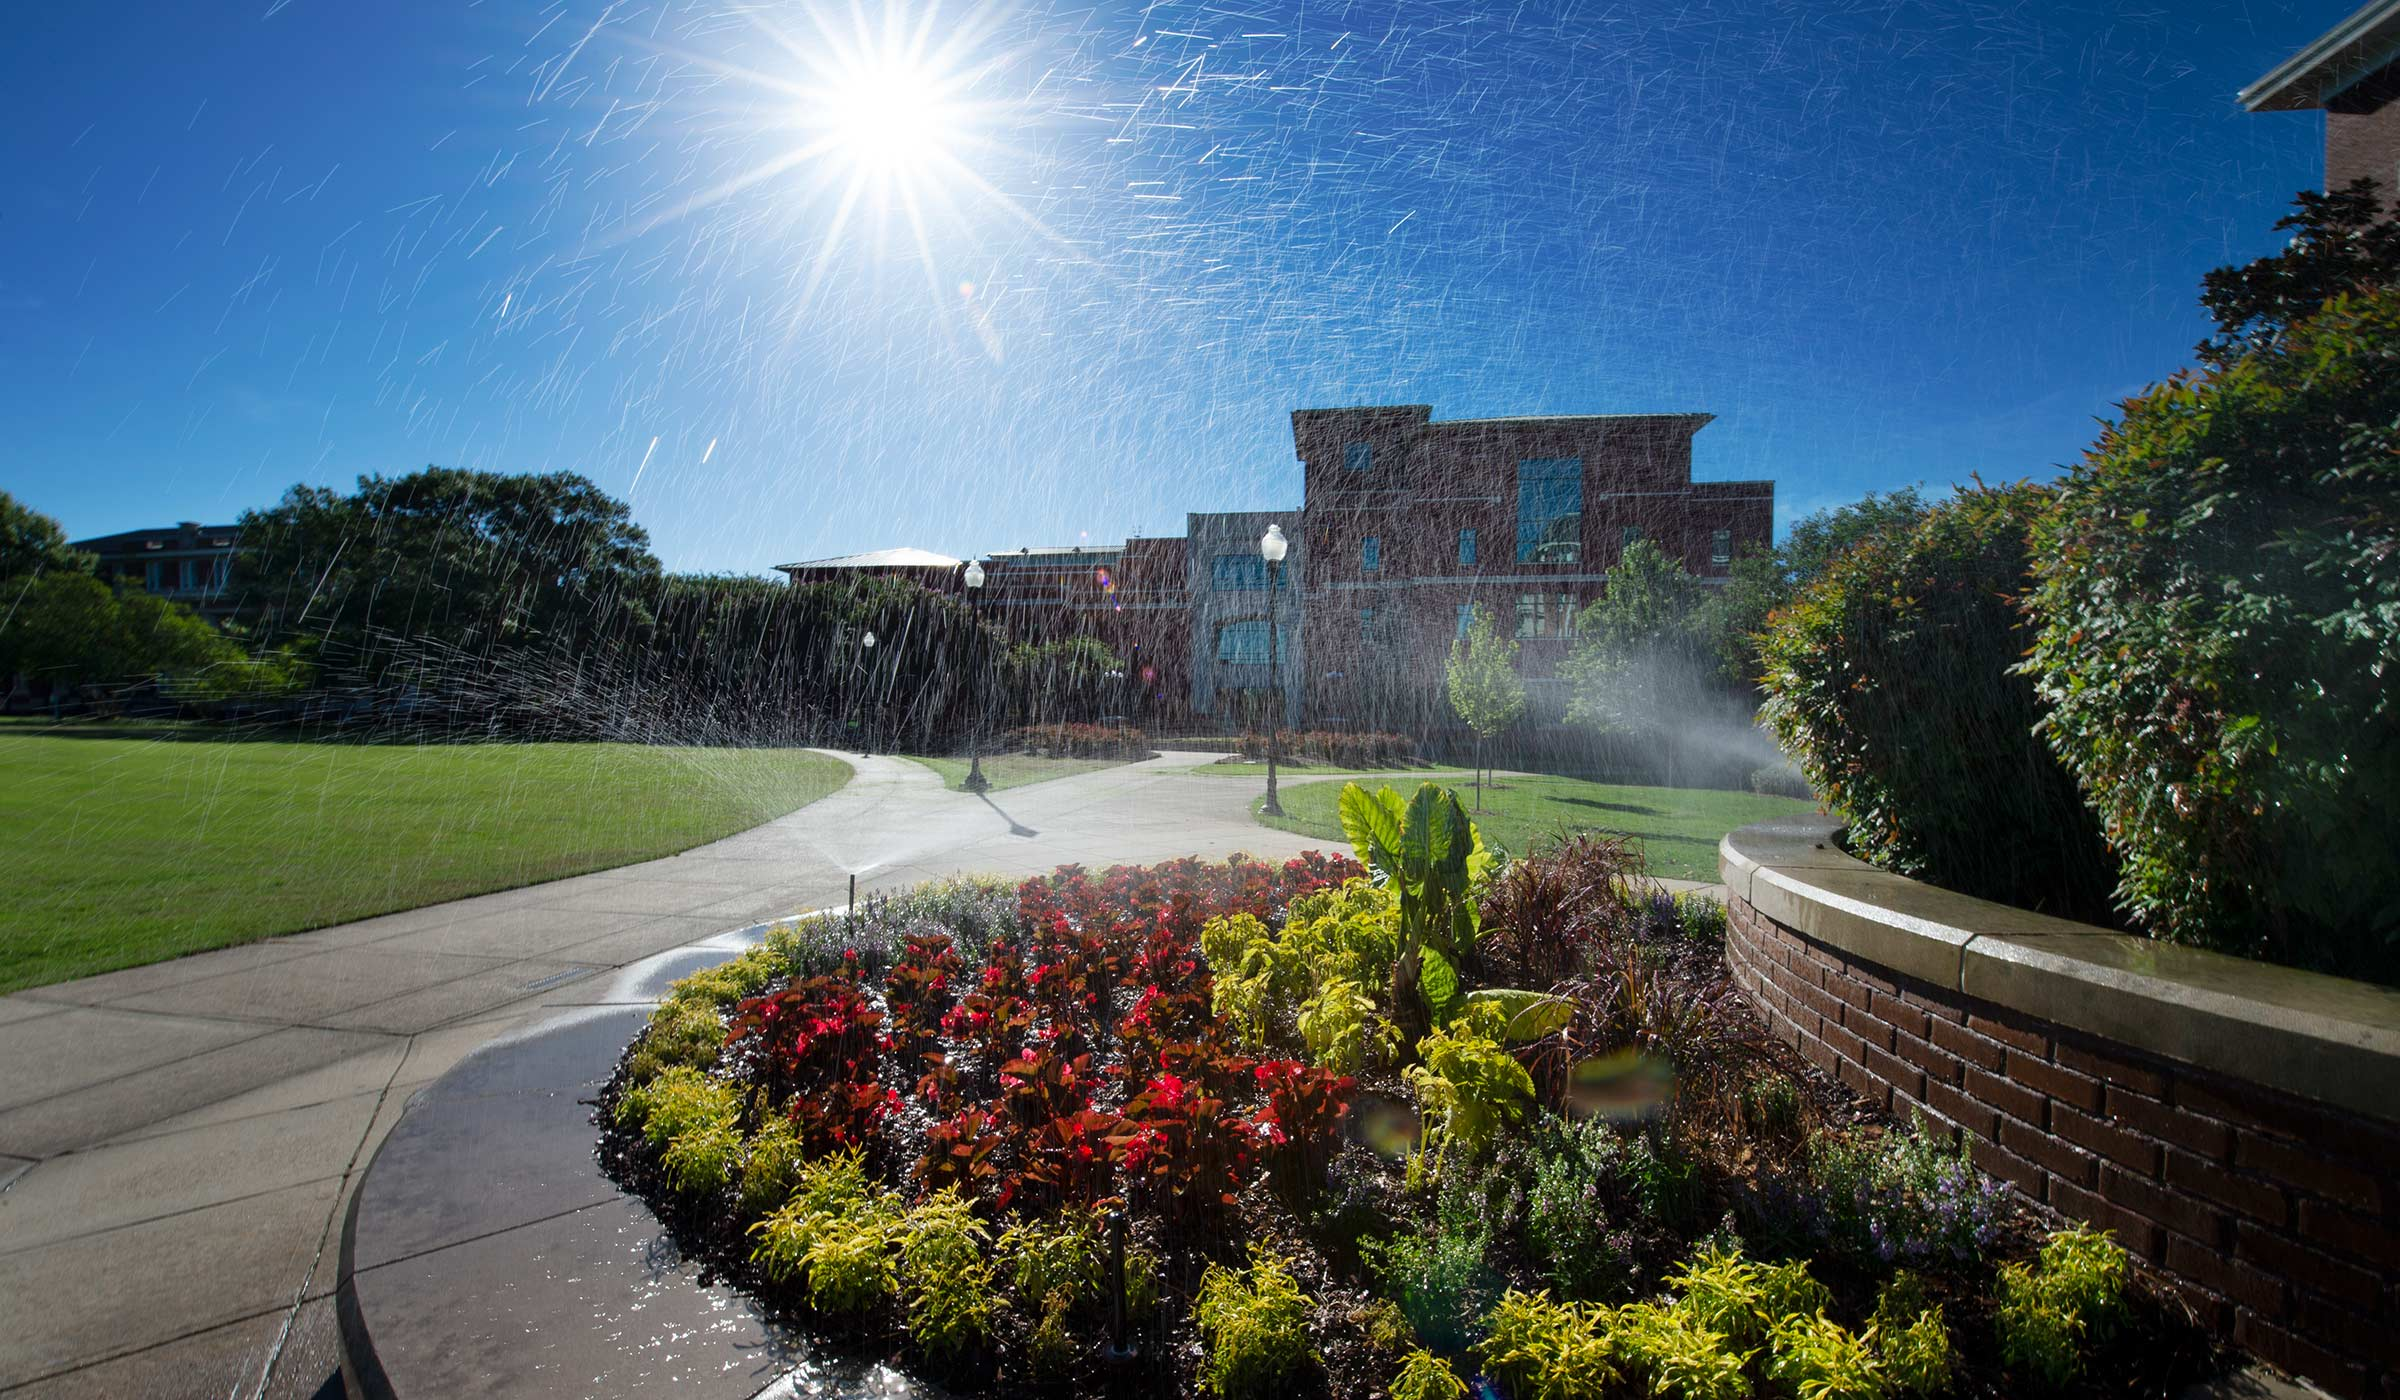 The morning sun catches sprinkler droplets over a flower bed in front of Swalm.